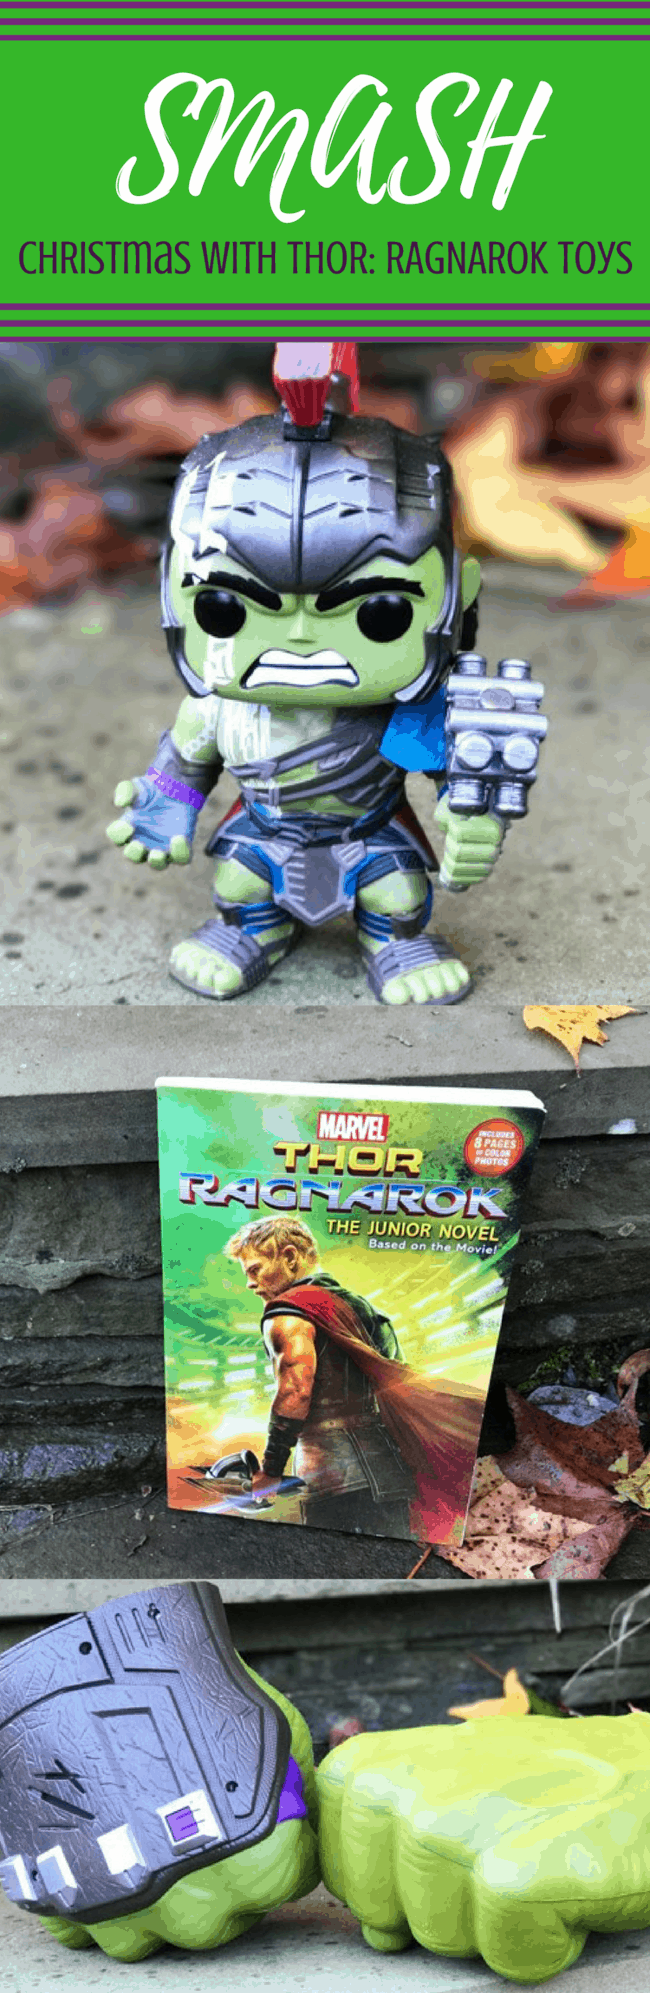 THOR: RAGNAROK toys for Christmas for the Marvel fan on your list! HULK | THOR | HELA | LOKI